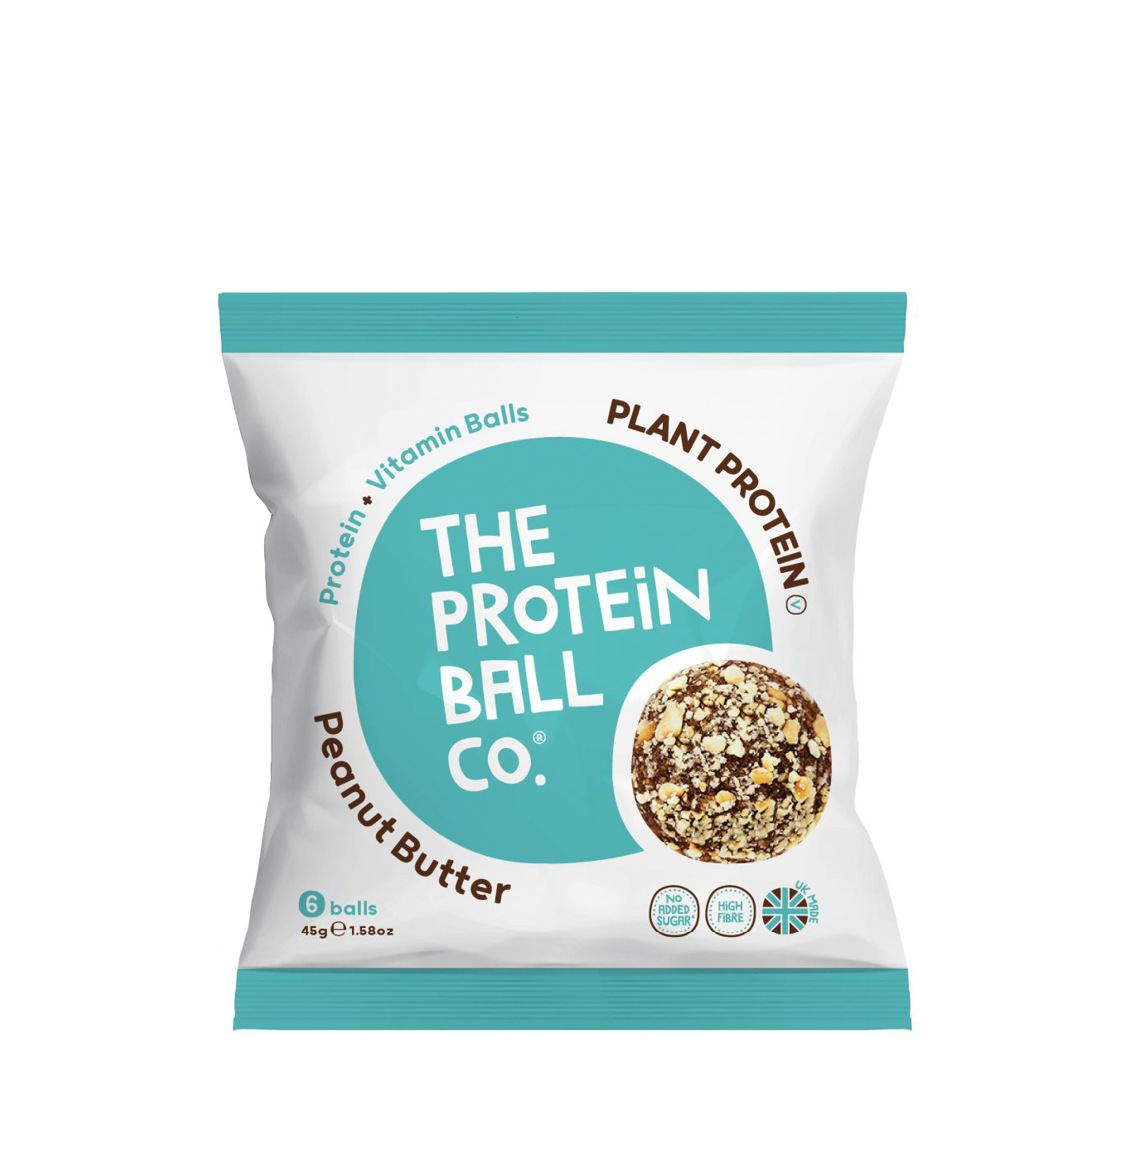 The Protein Ball Co. Peanut Butter Plant Protein Vegan Balls 45g